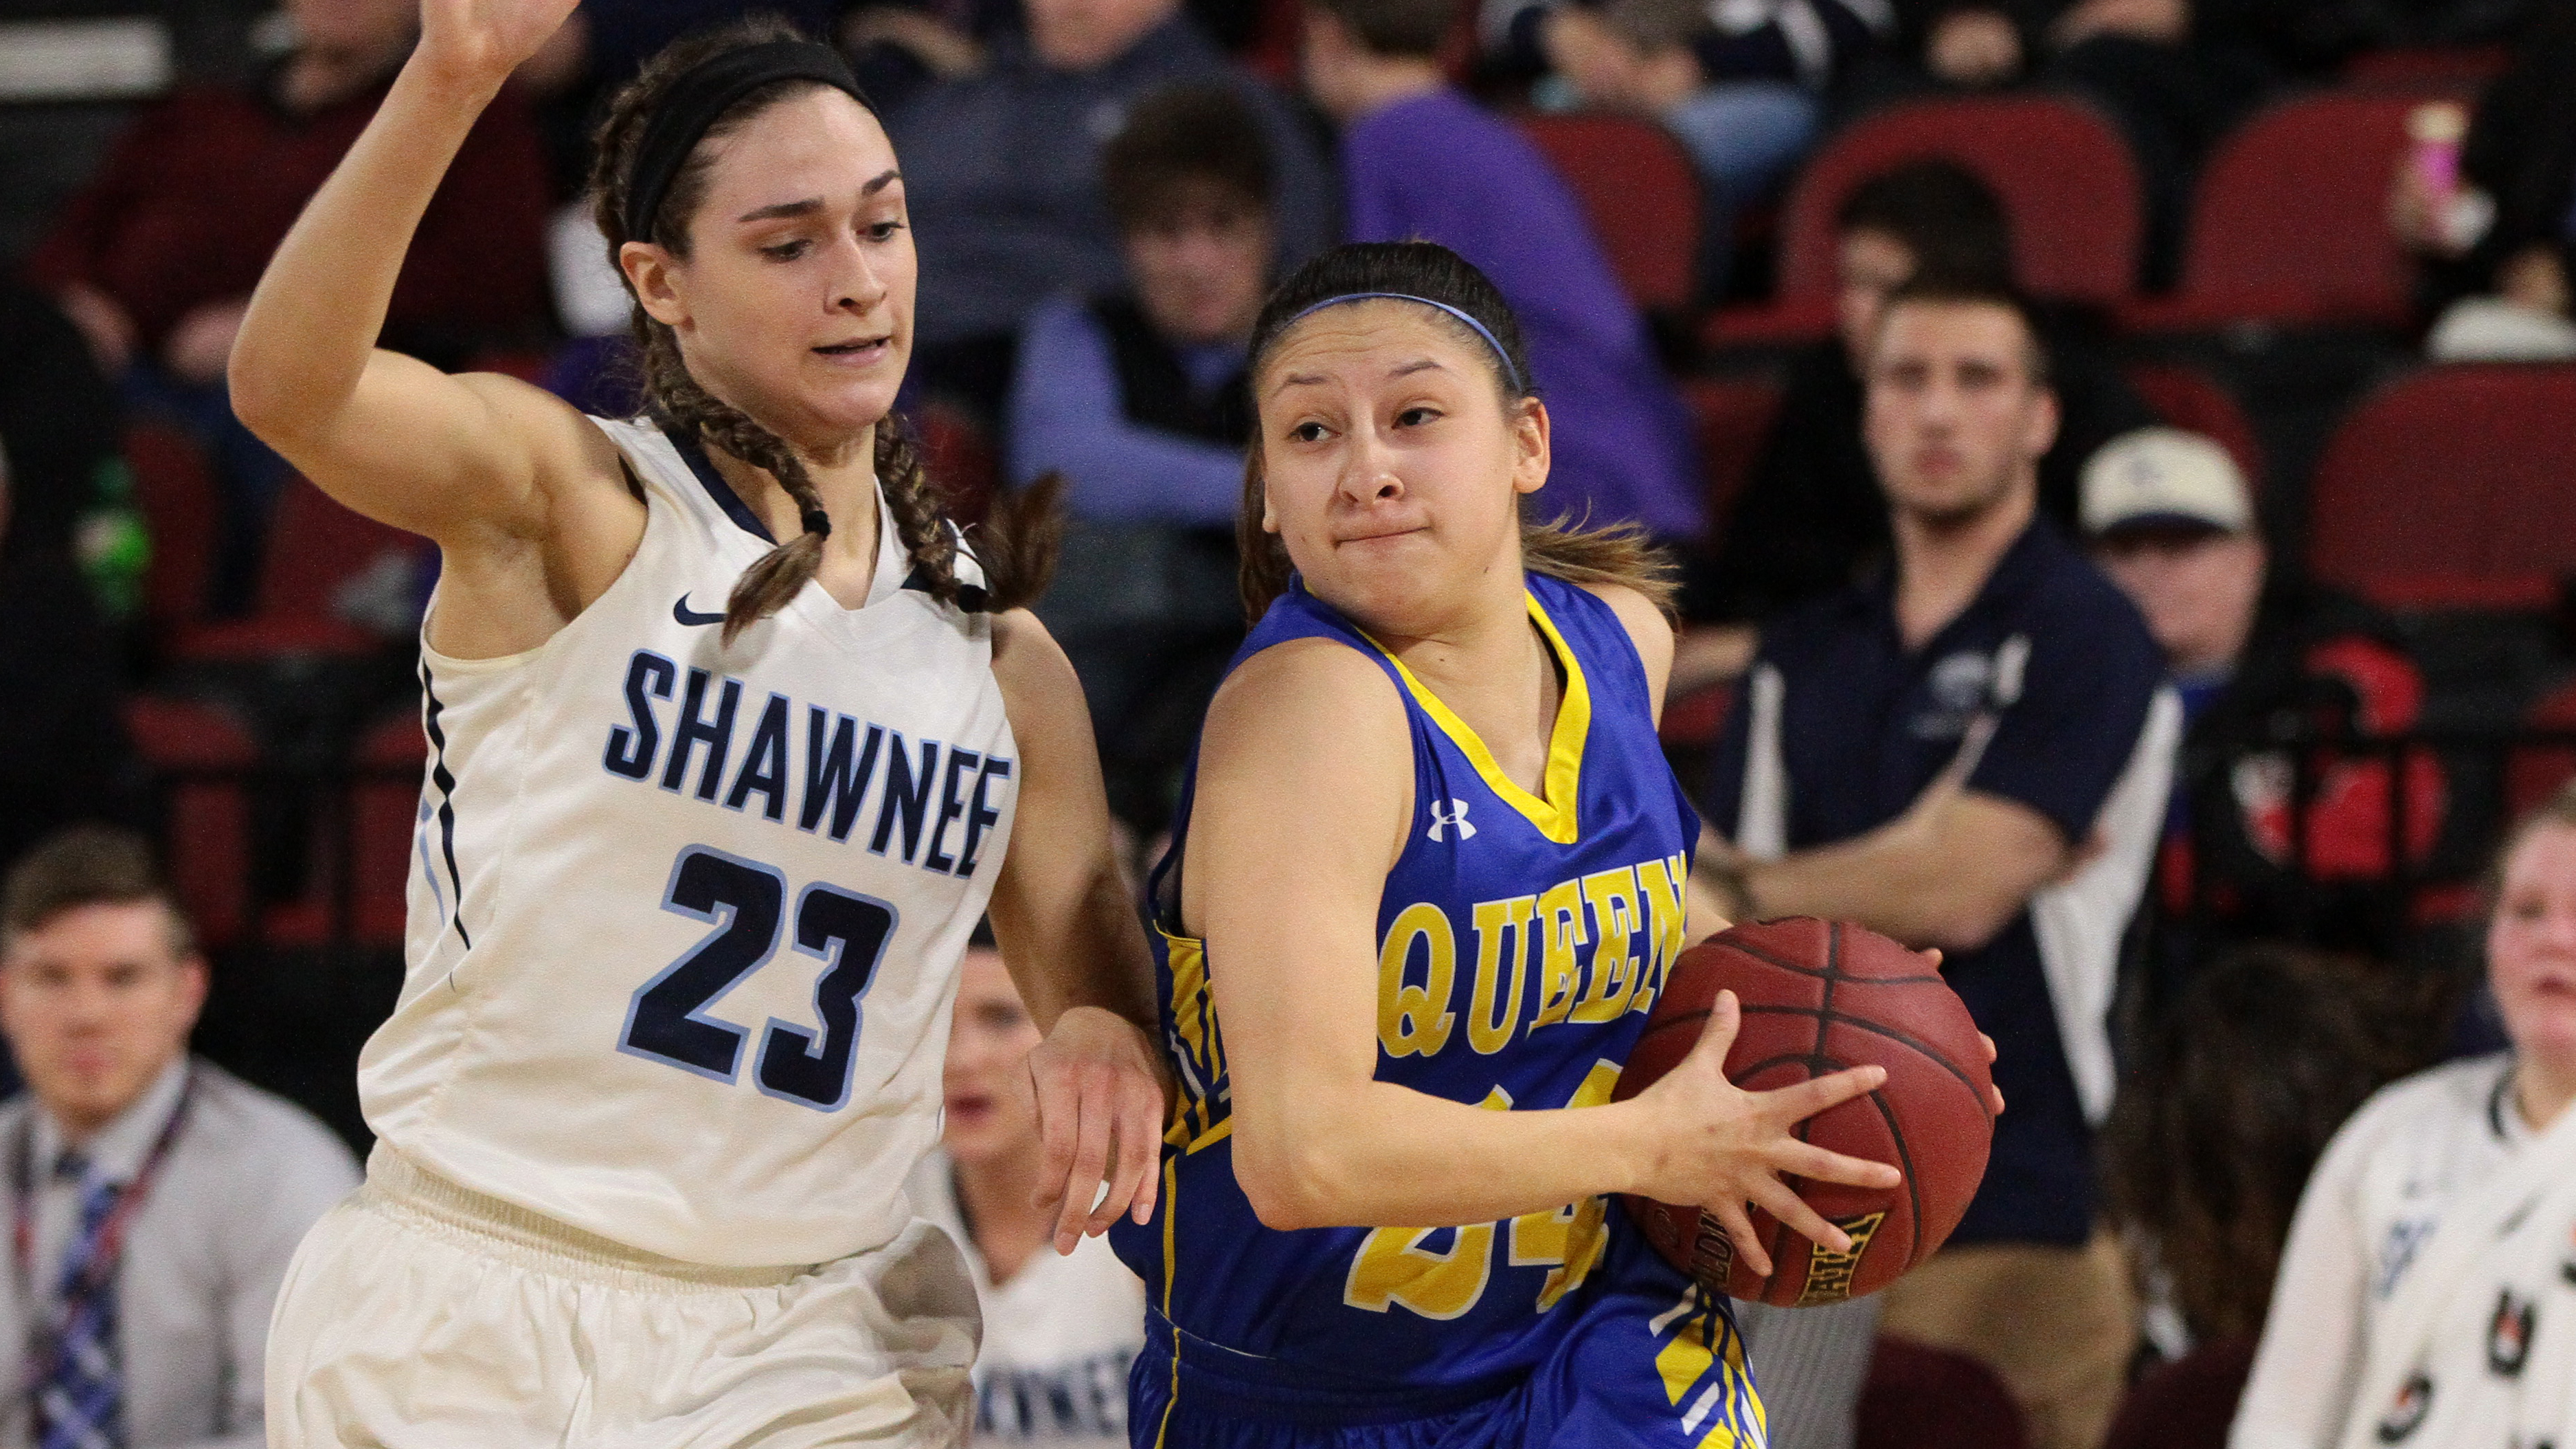 Wayland Baptist (Texas) Upsets Shawnee State (Ohio) to Advance to Quarterfinals